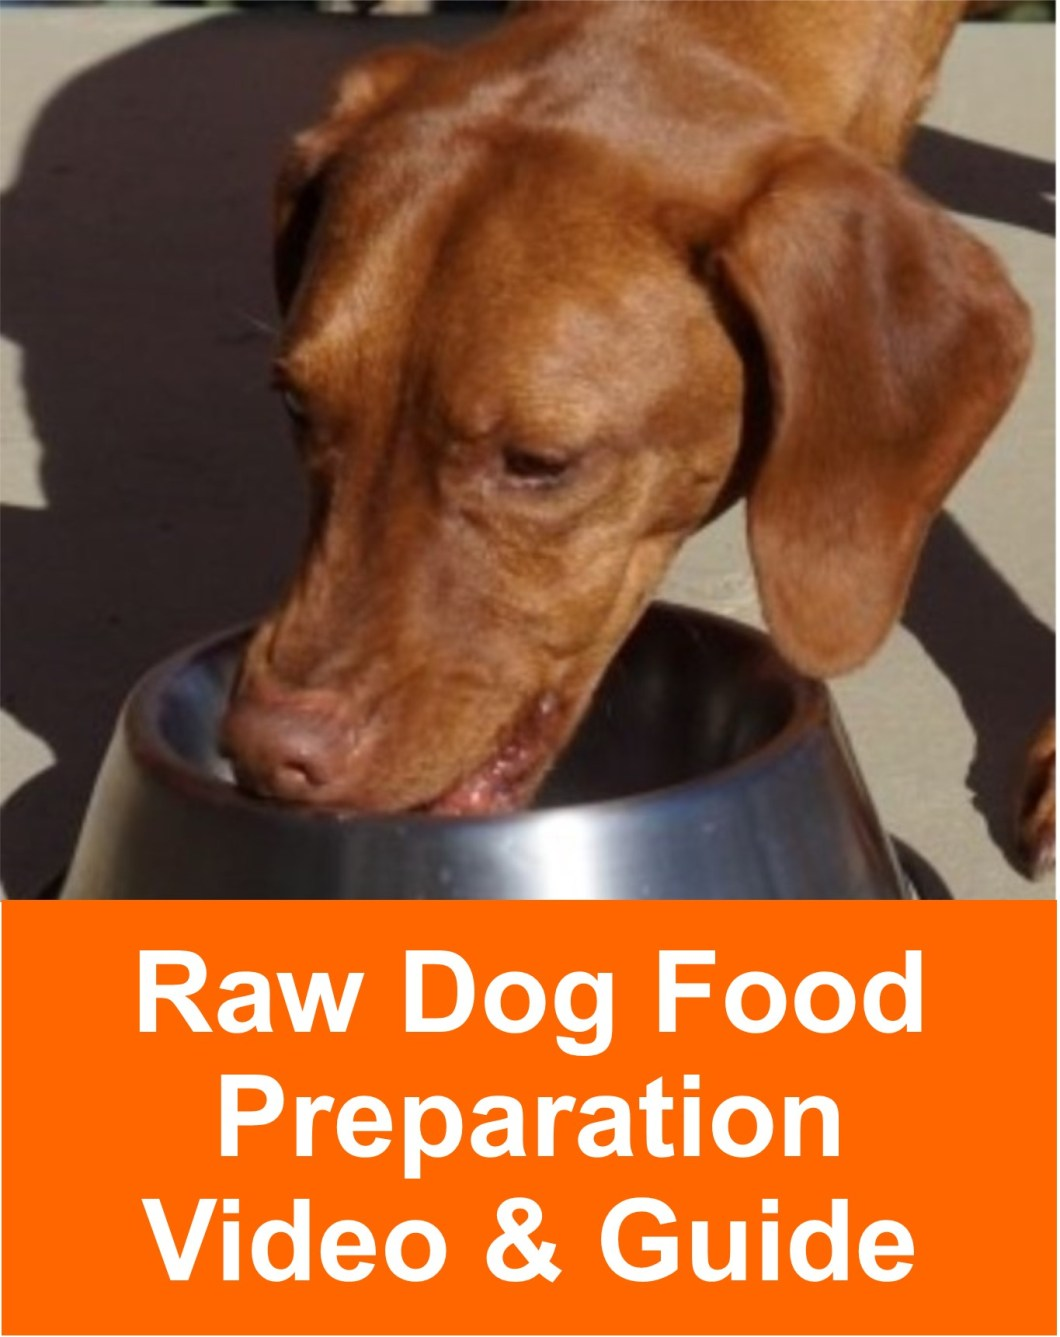 Feed your dog Raw